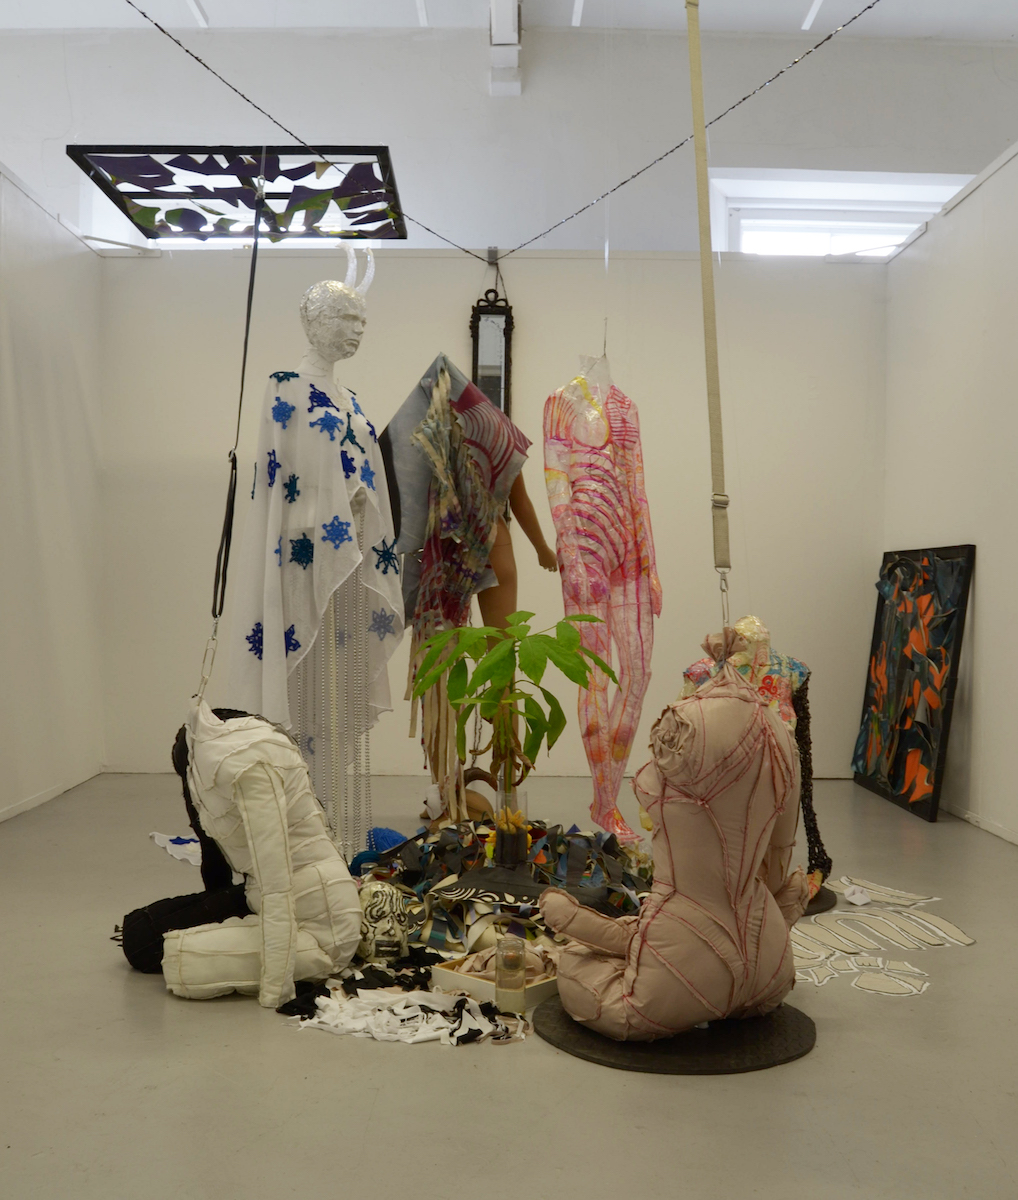 Kat Cordeux, installation view, image courtesy of the writer.